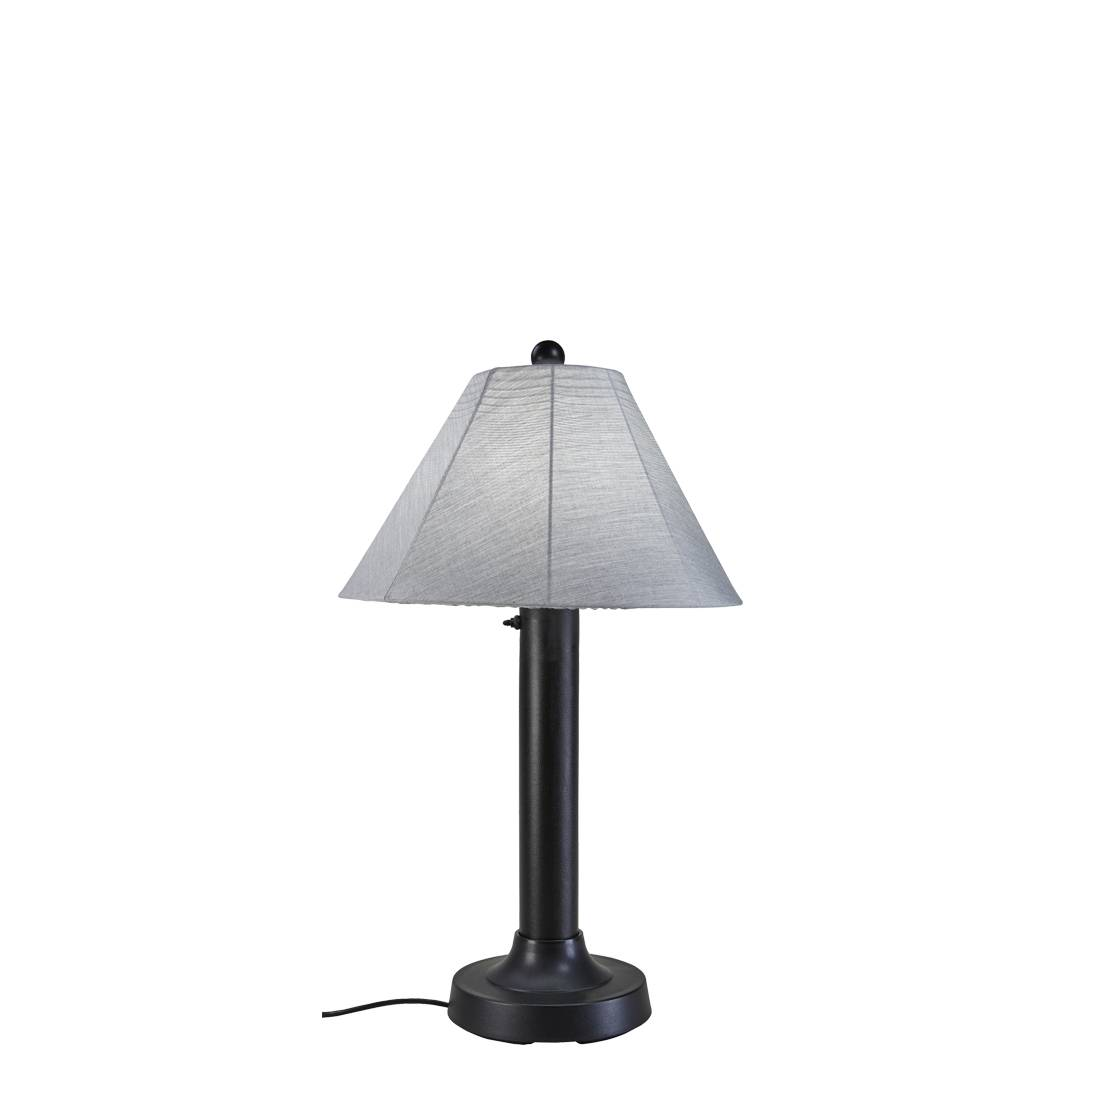 Seaside Patio Table Lamp Decorative Lighting For